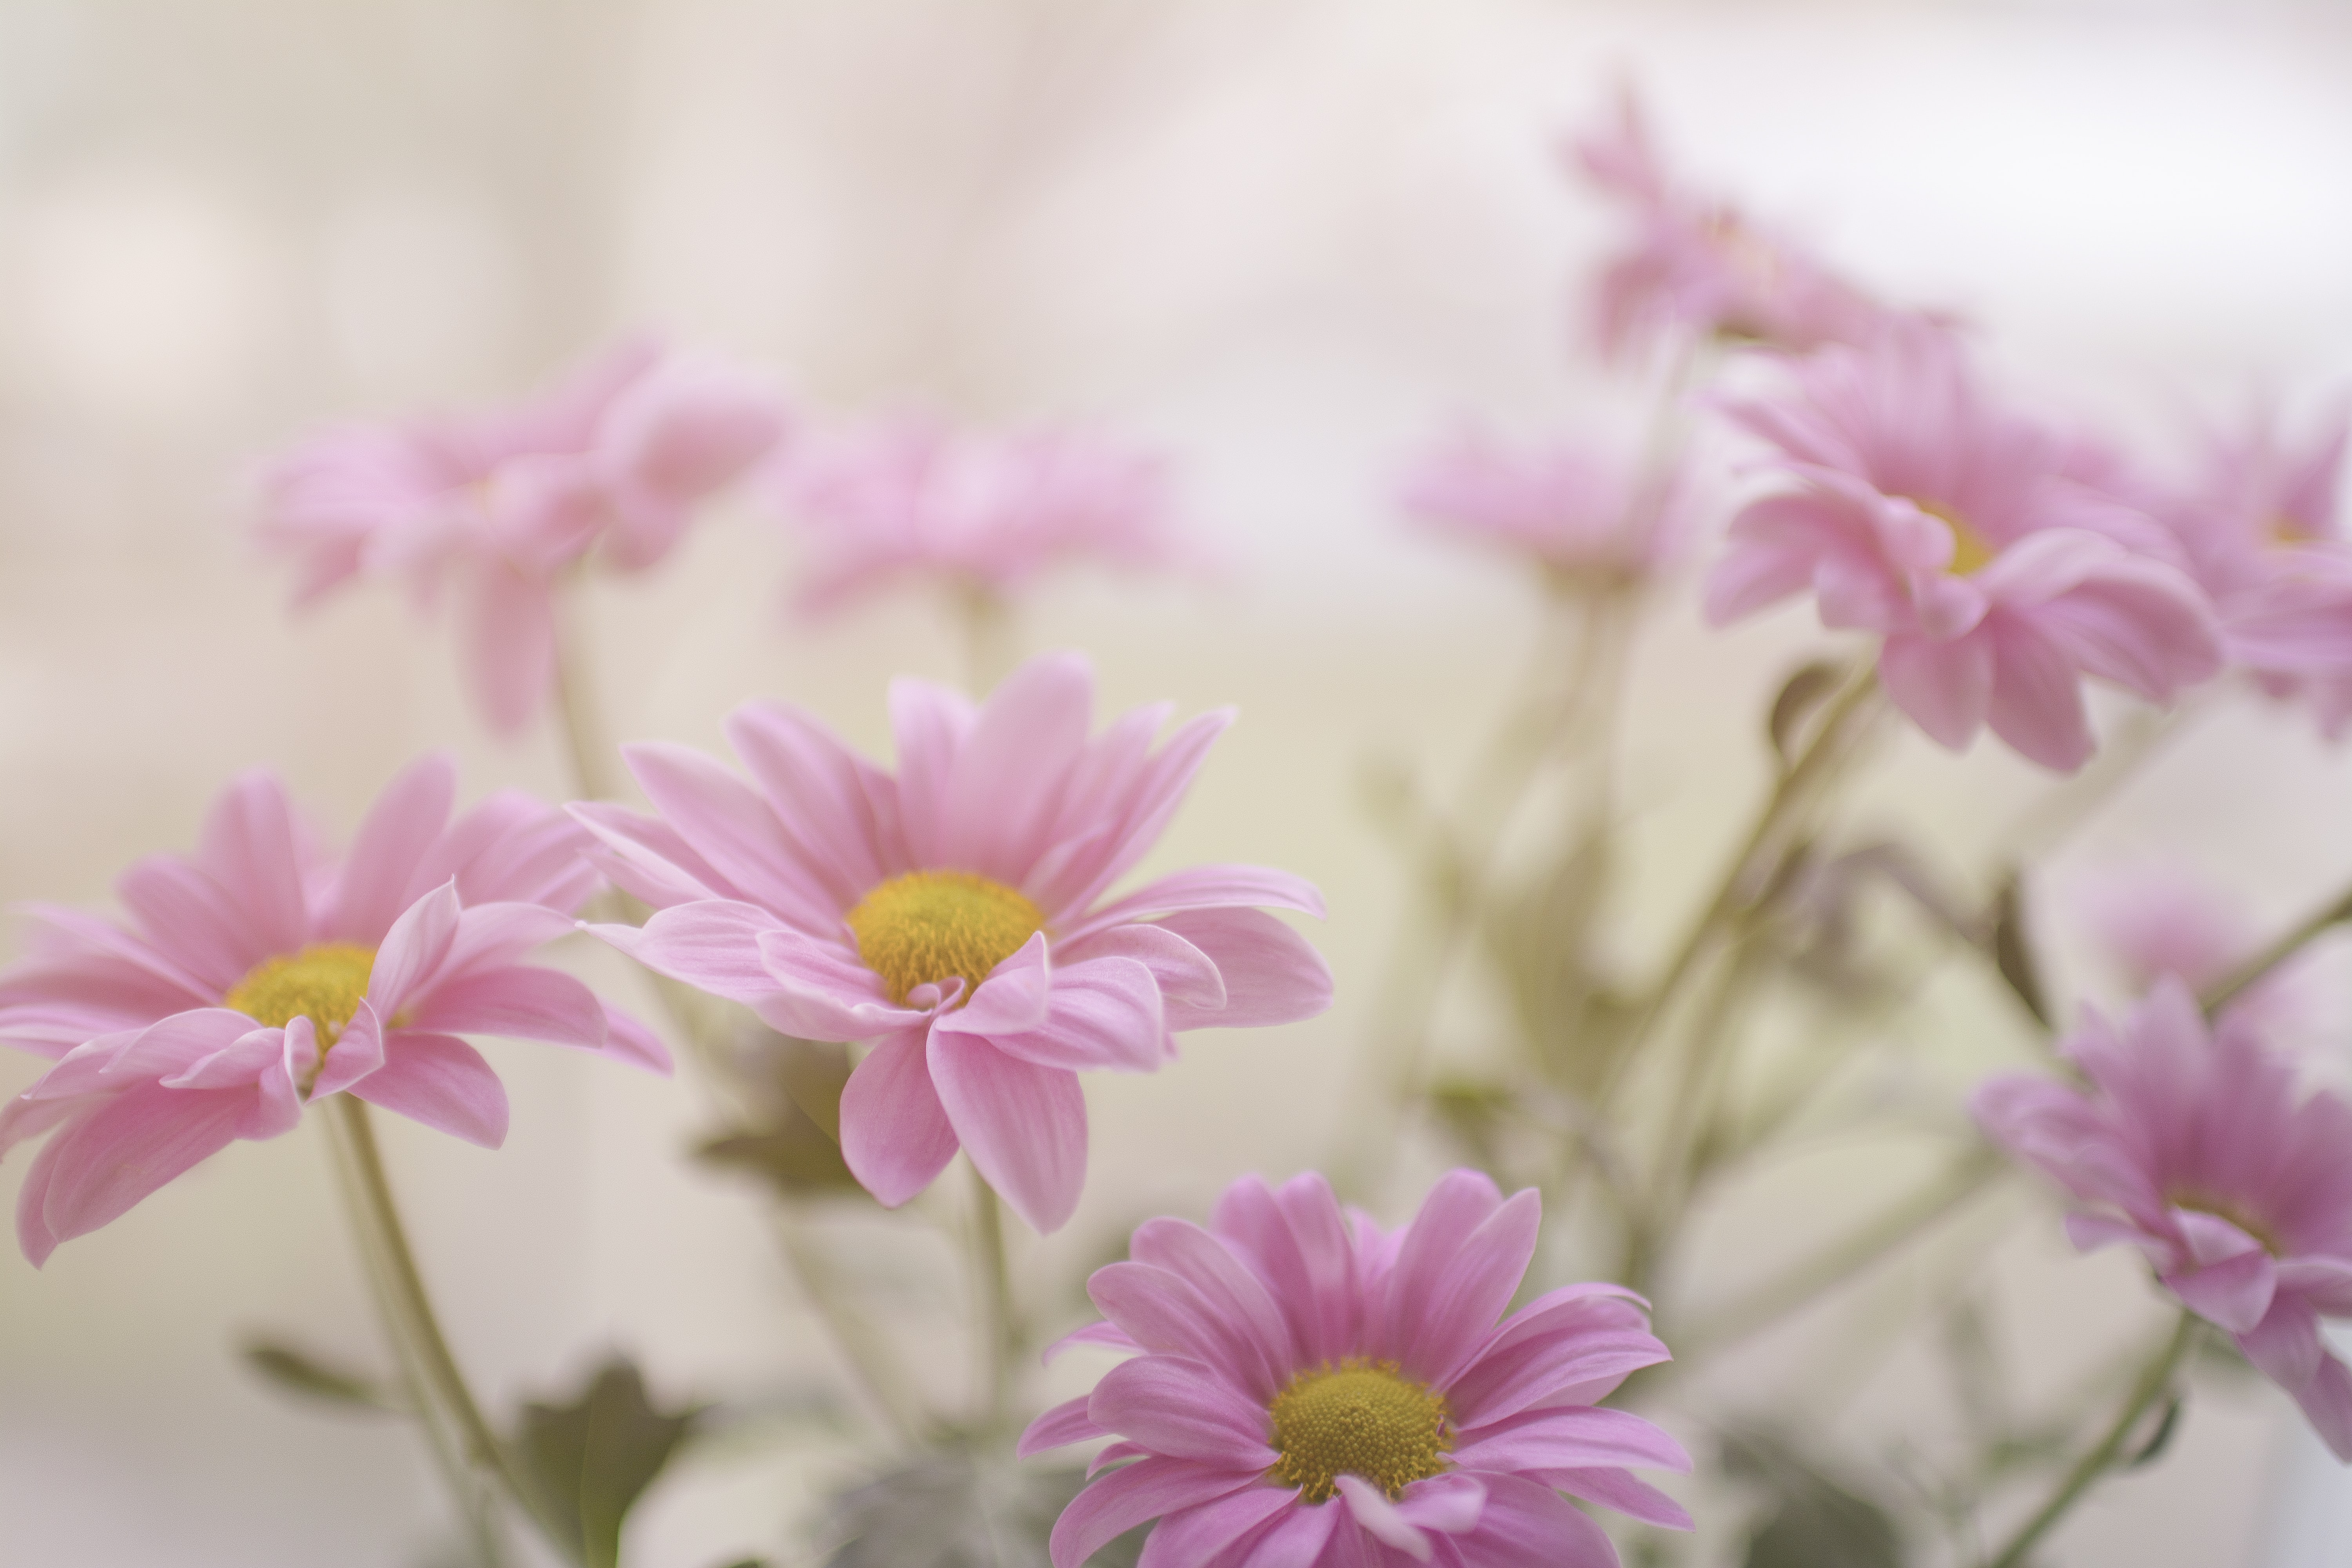 pink daisy flower plant